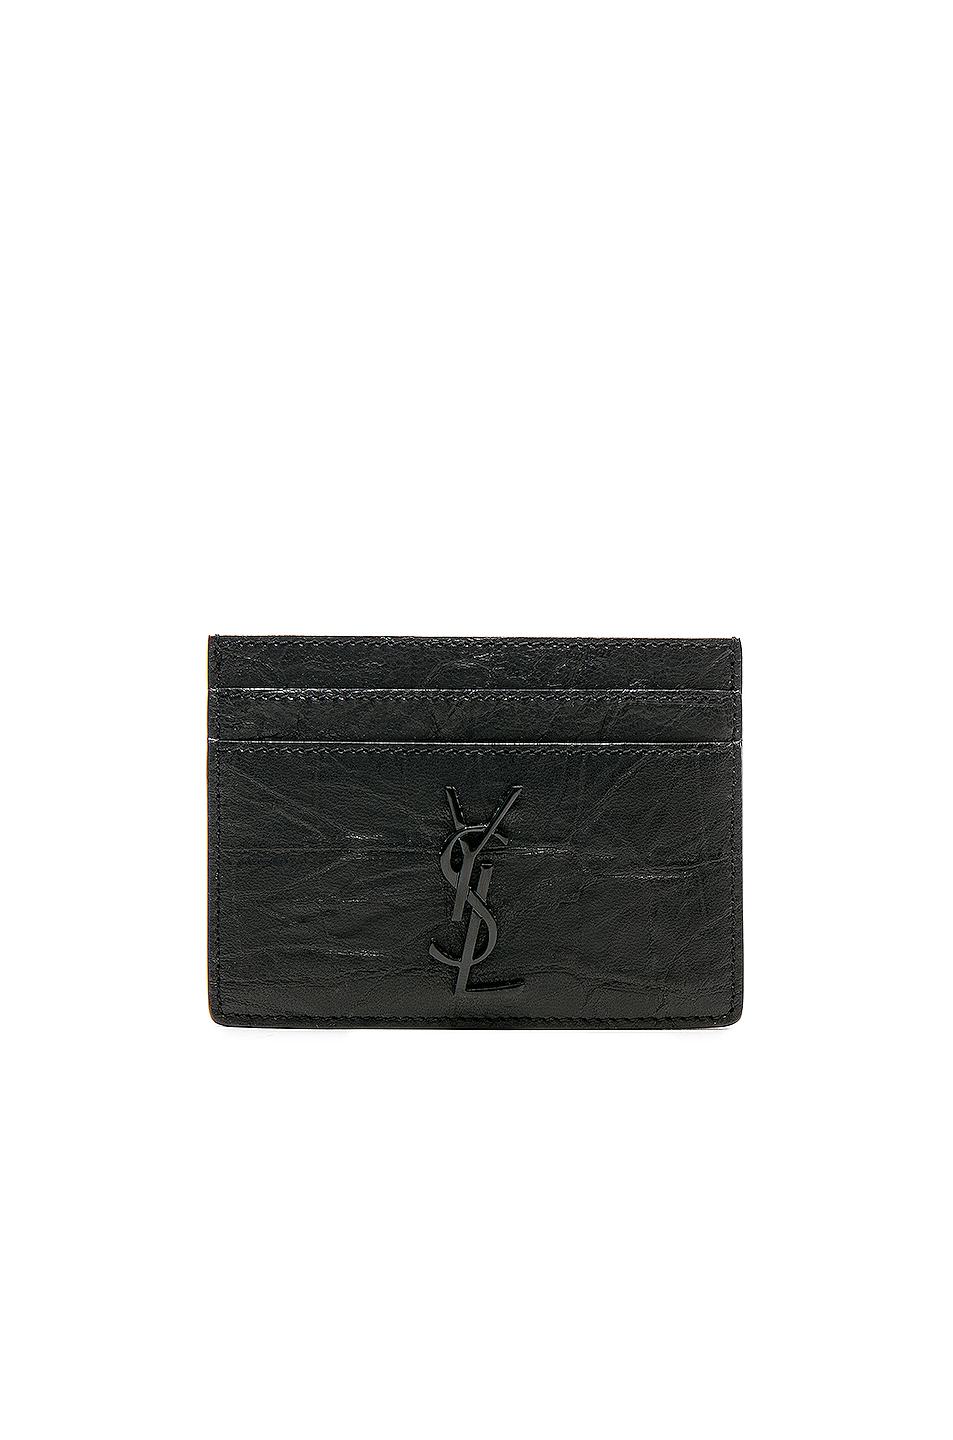 Saint Laurent Croc Embossed Cardholder in Black